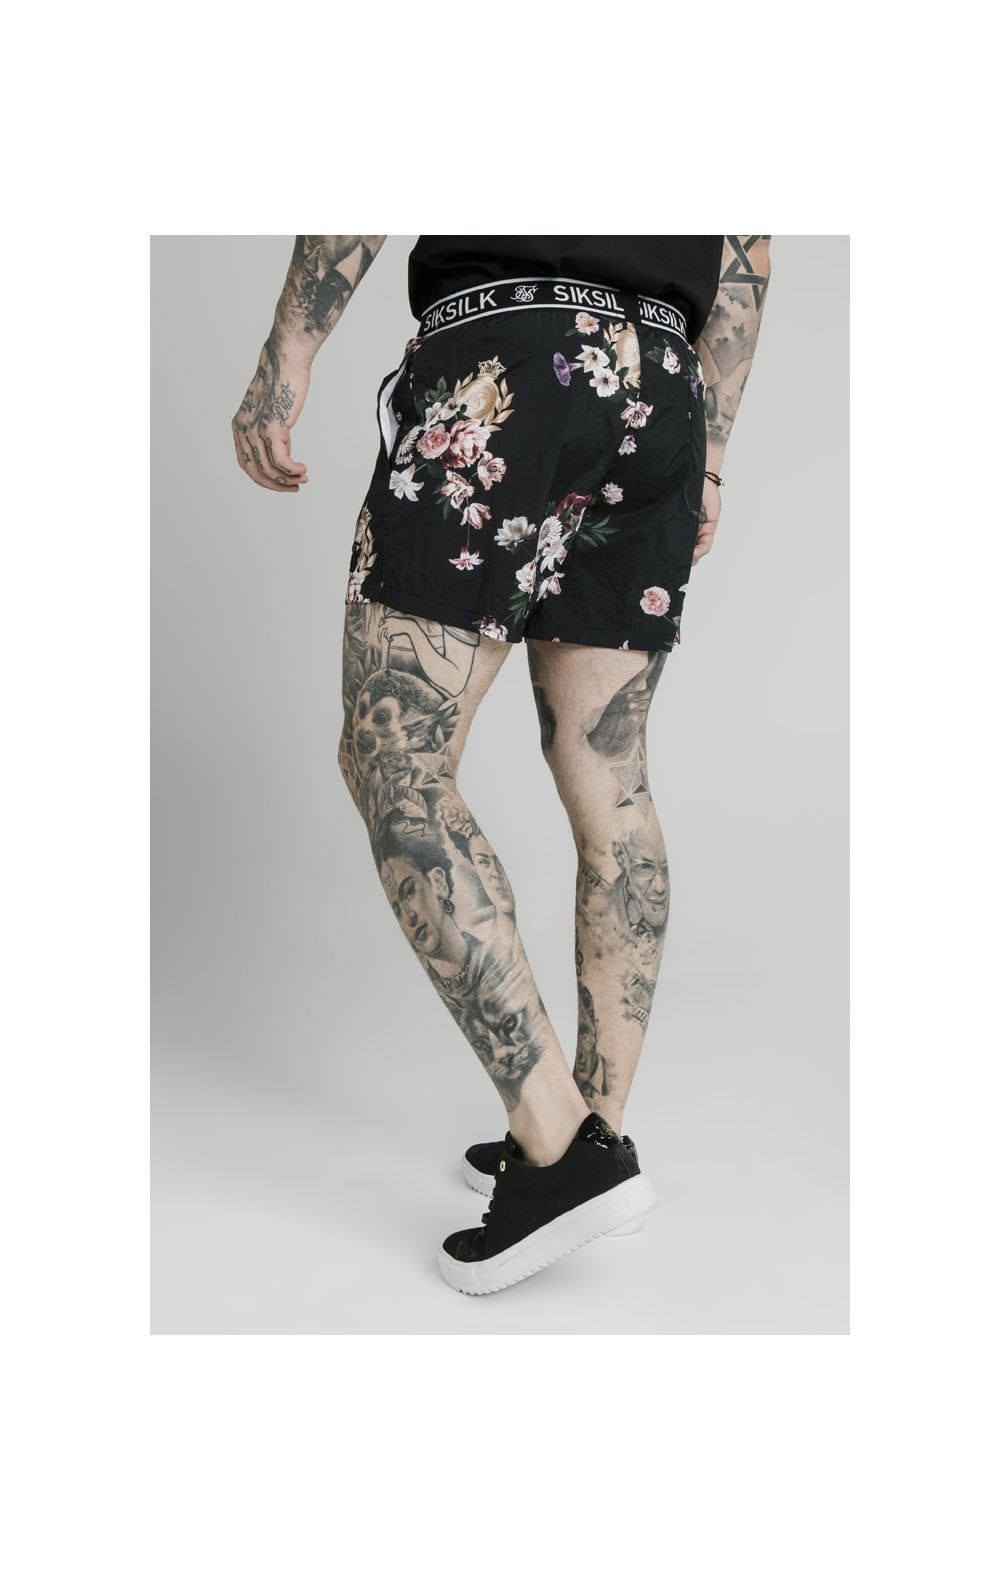 Load image into Gallery viewer, SikSilk Prestige Floral Swim Shorts - Black (4)